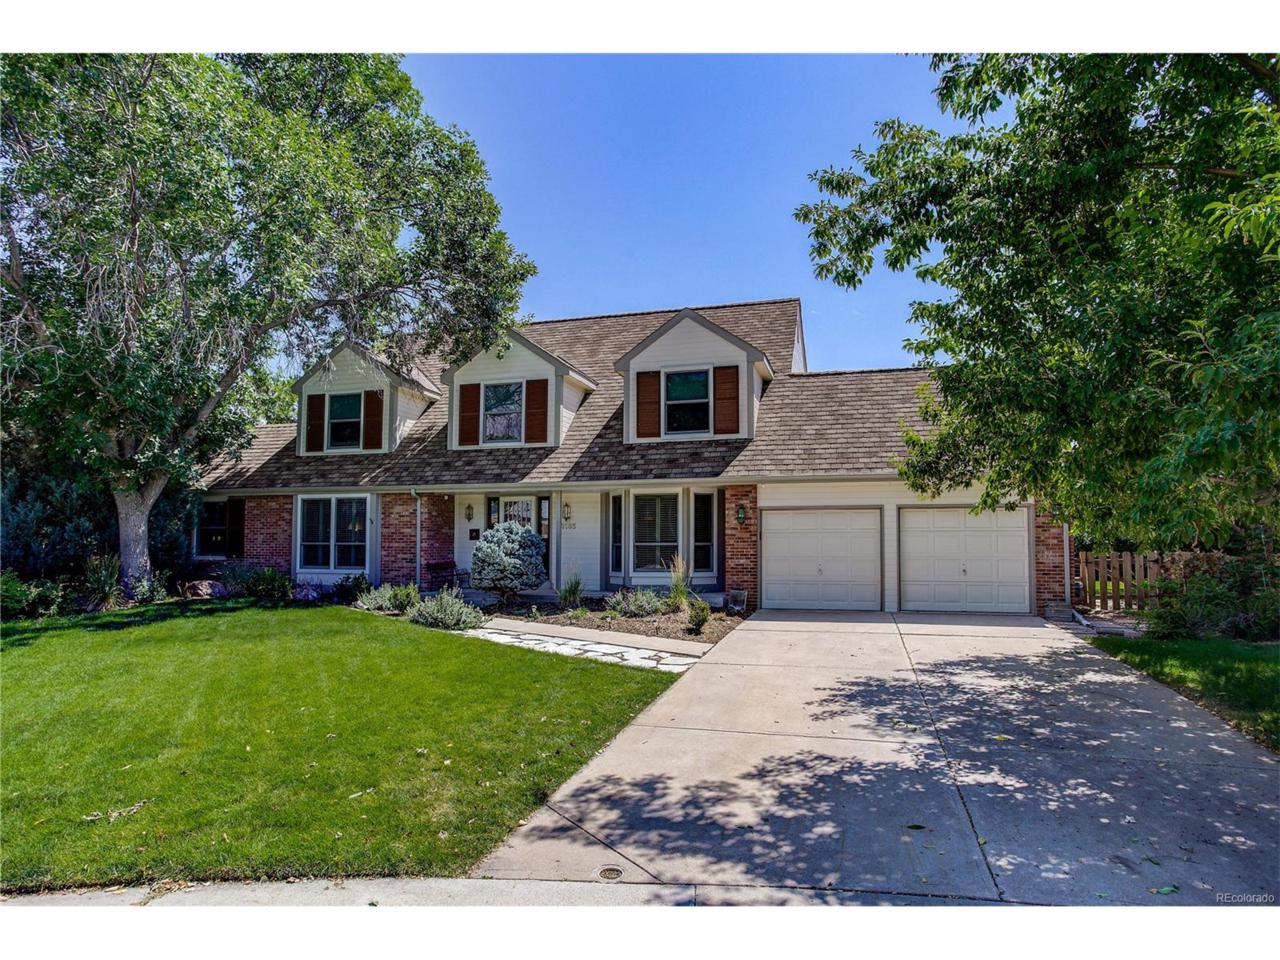 2185 Thistle Ridge Circle, Highlands Ranch, CO 80126 (MLS #6156074) :: 8z Real Estate